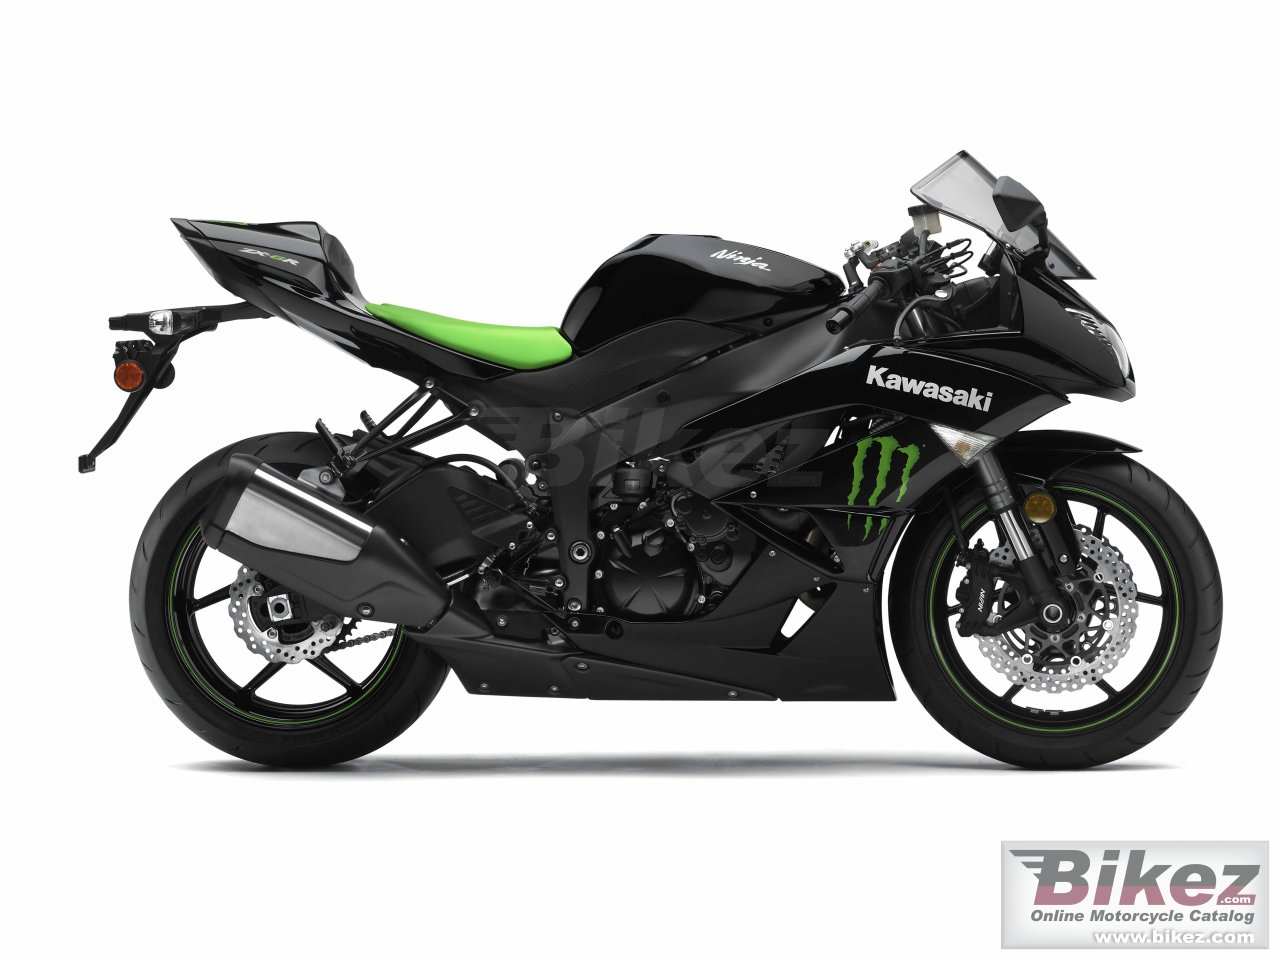 Big Kawasaki ninja zx-6r monster energy picture and wallpaper from Bikez.com